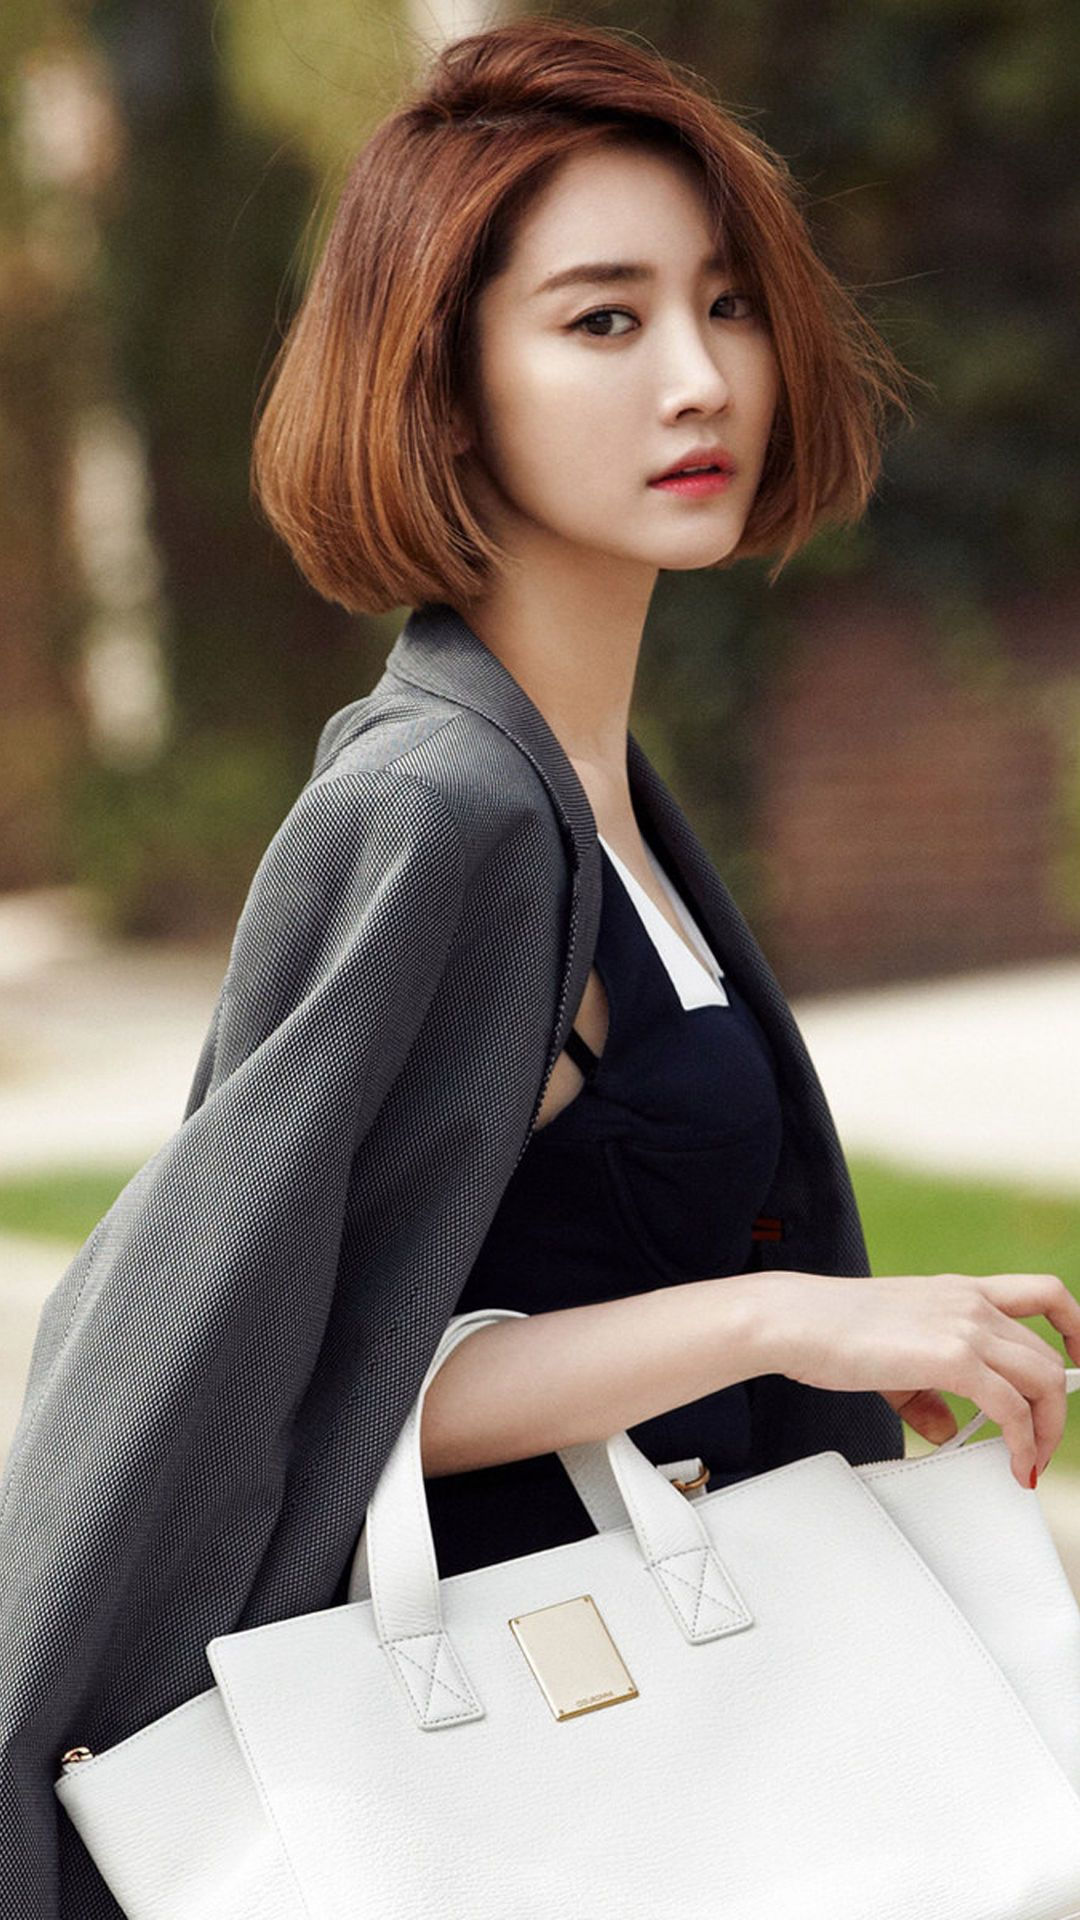 Short Hair Korean Women This Season Korean Season Short Women Asian Short Hair Asian Hair Hair Styles